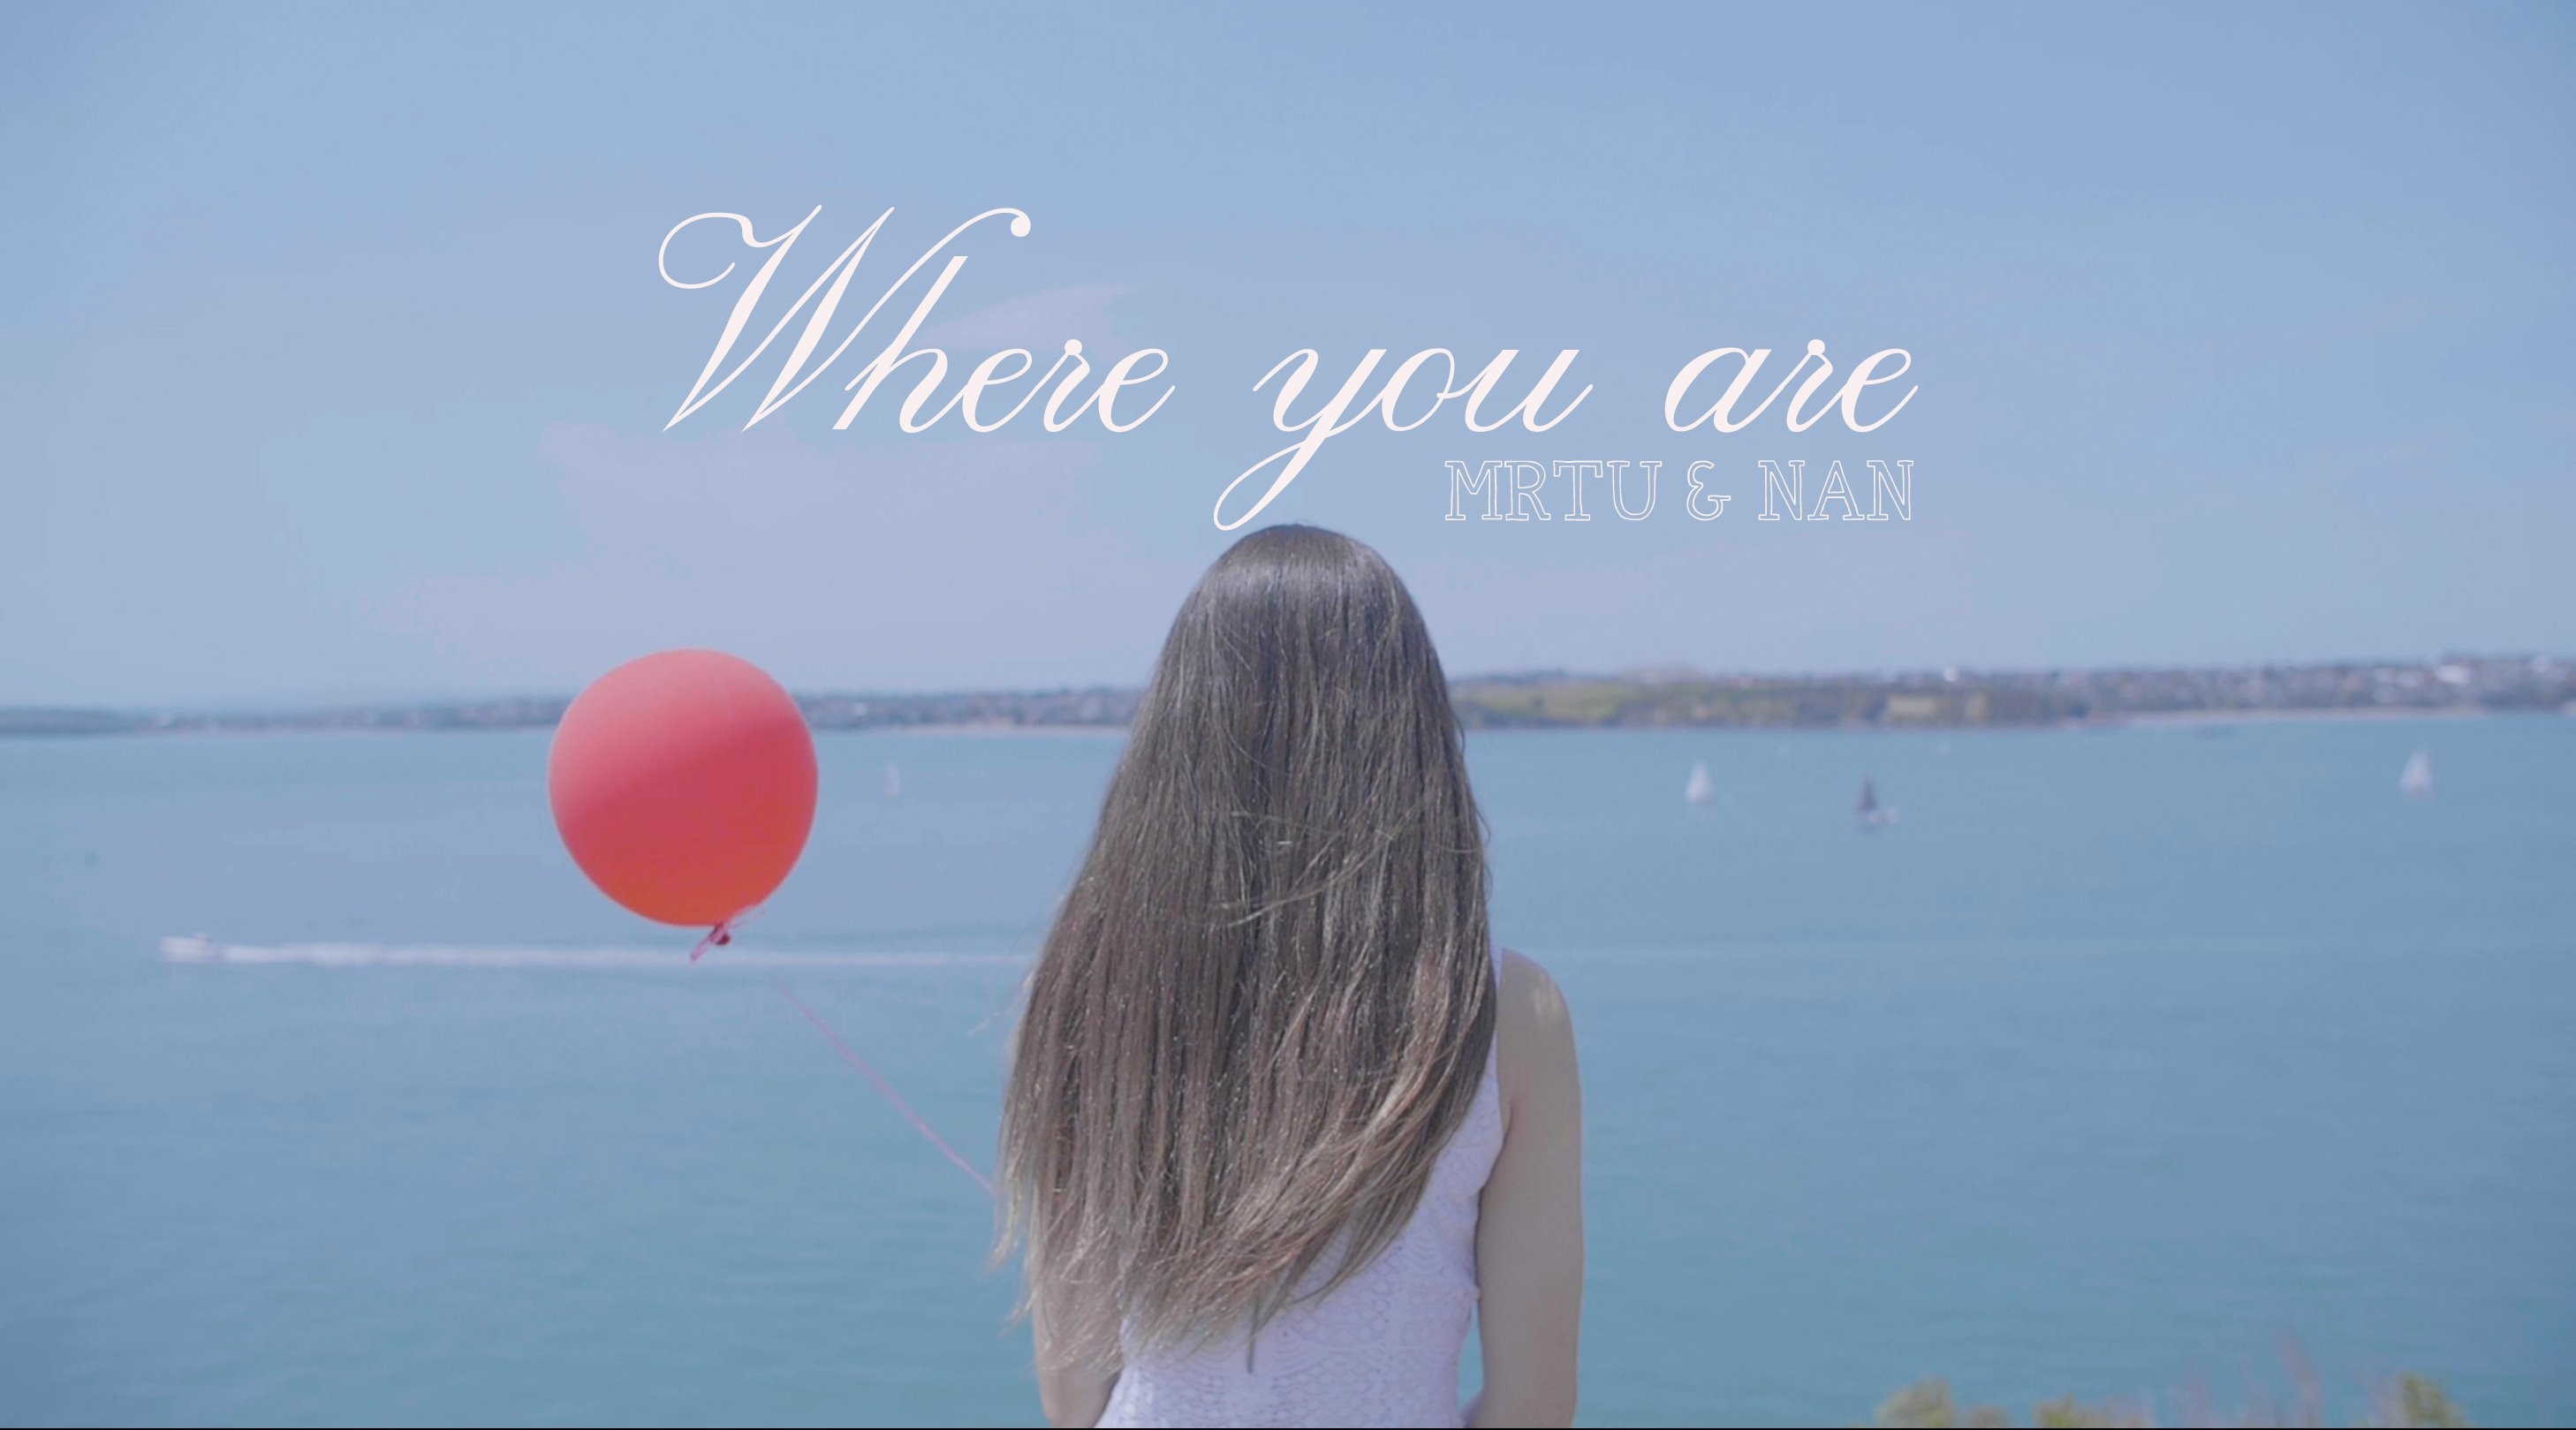 MRTU & NAN - WHRER YOU ARE POSTER #